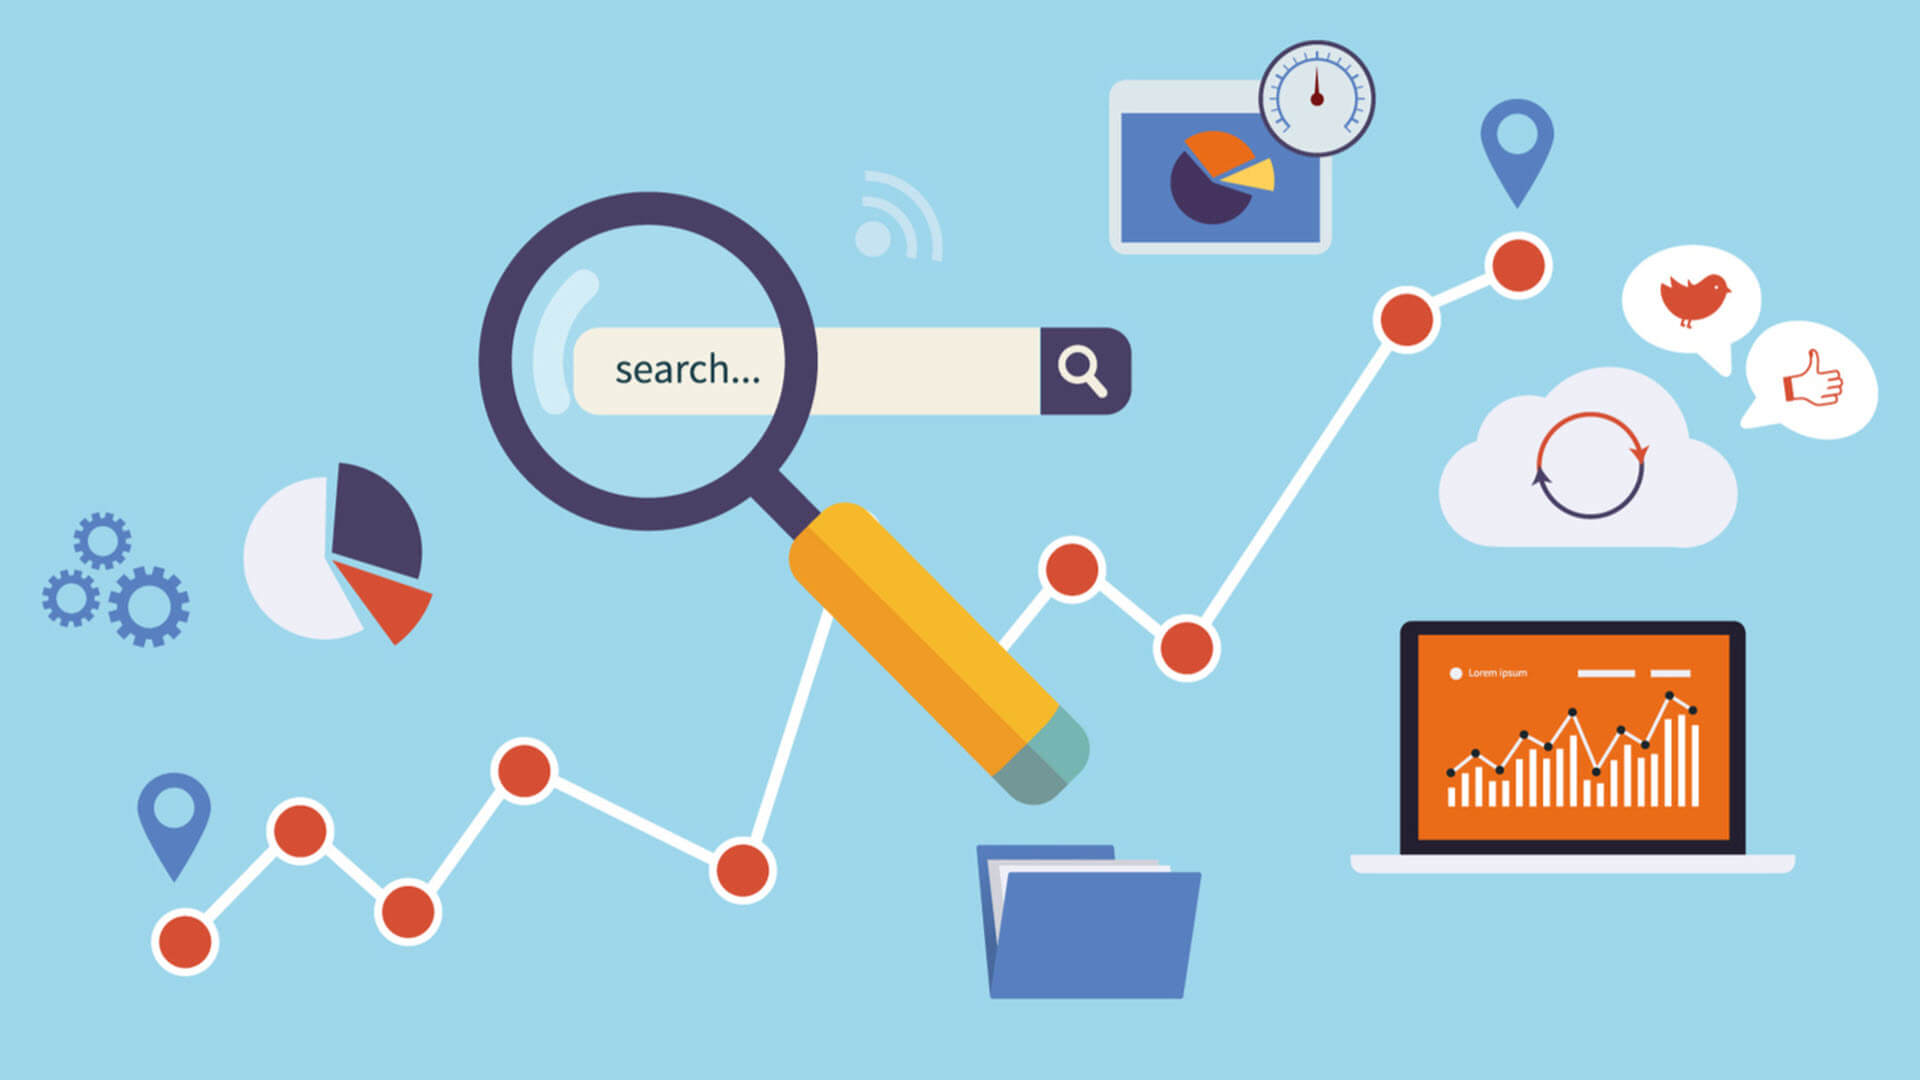 5 Good SEO Practices To Follow In 2018